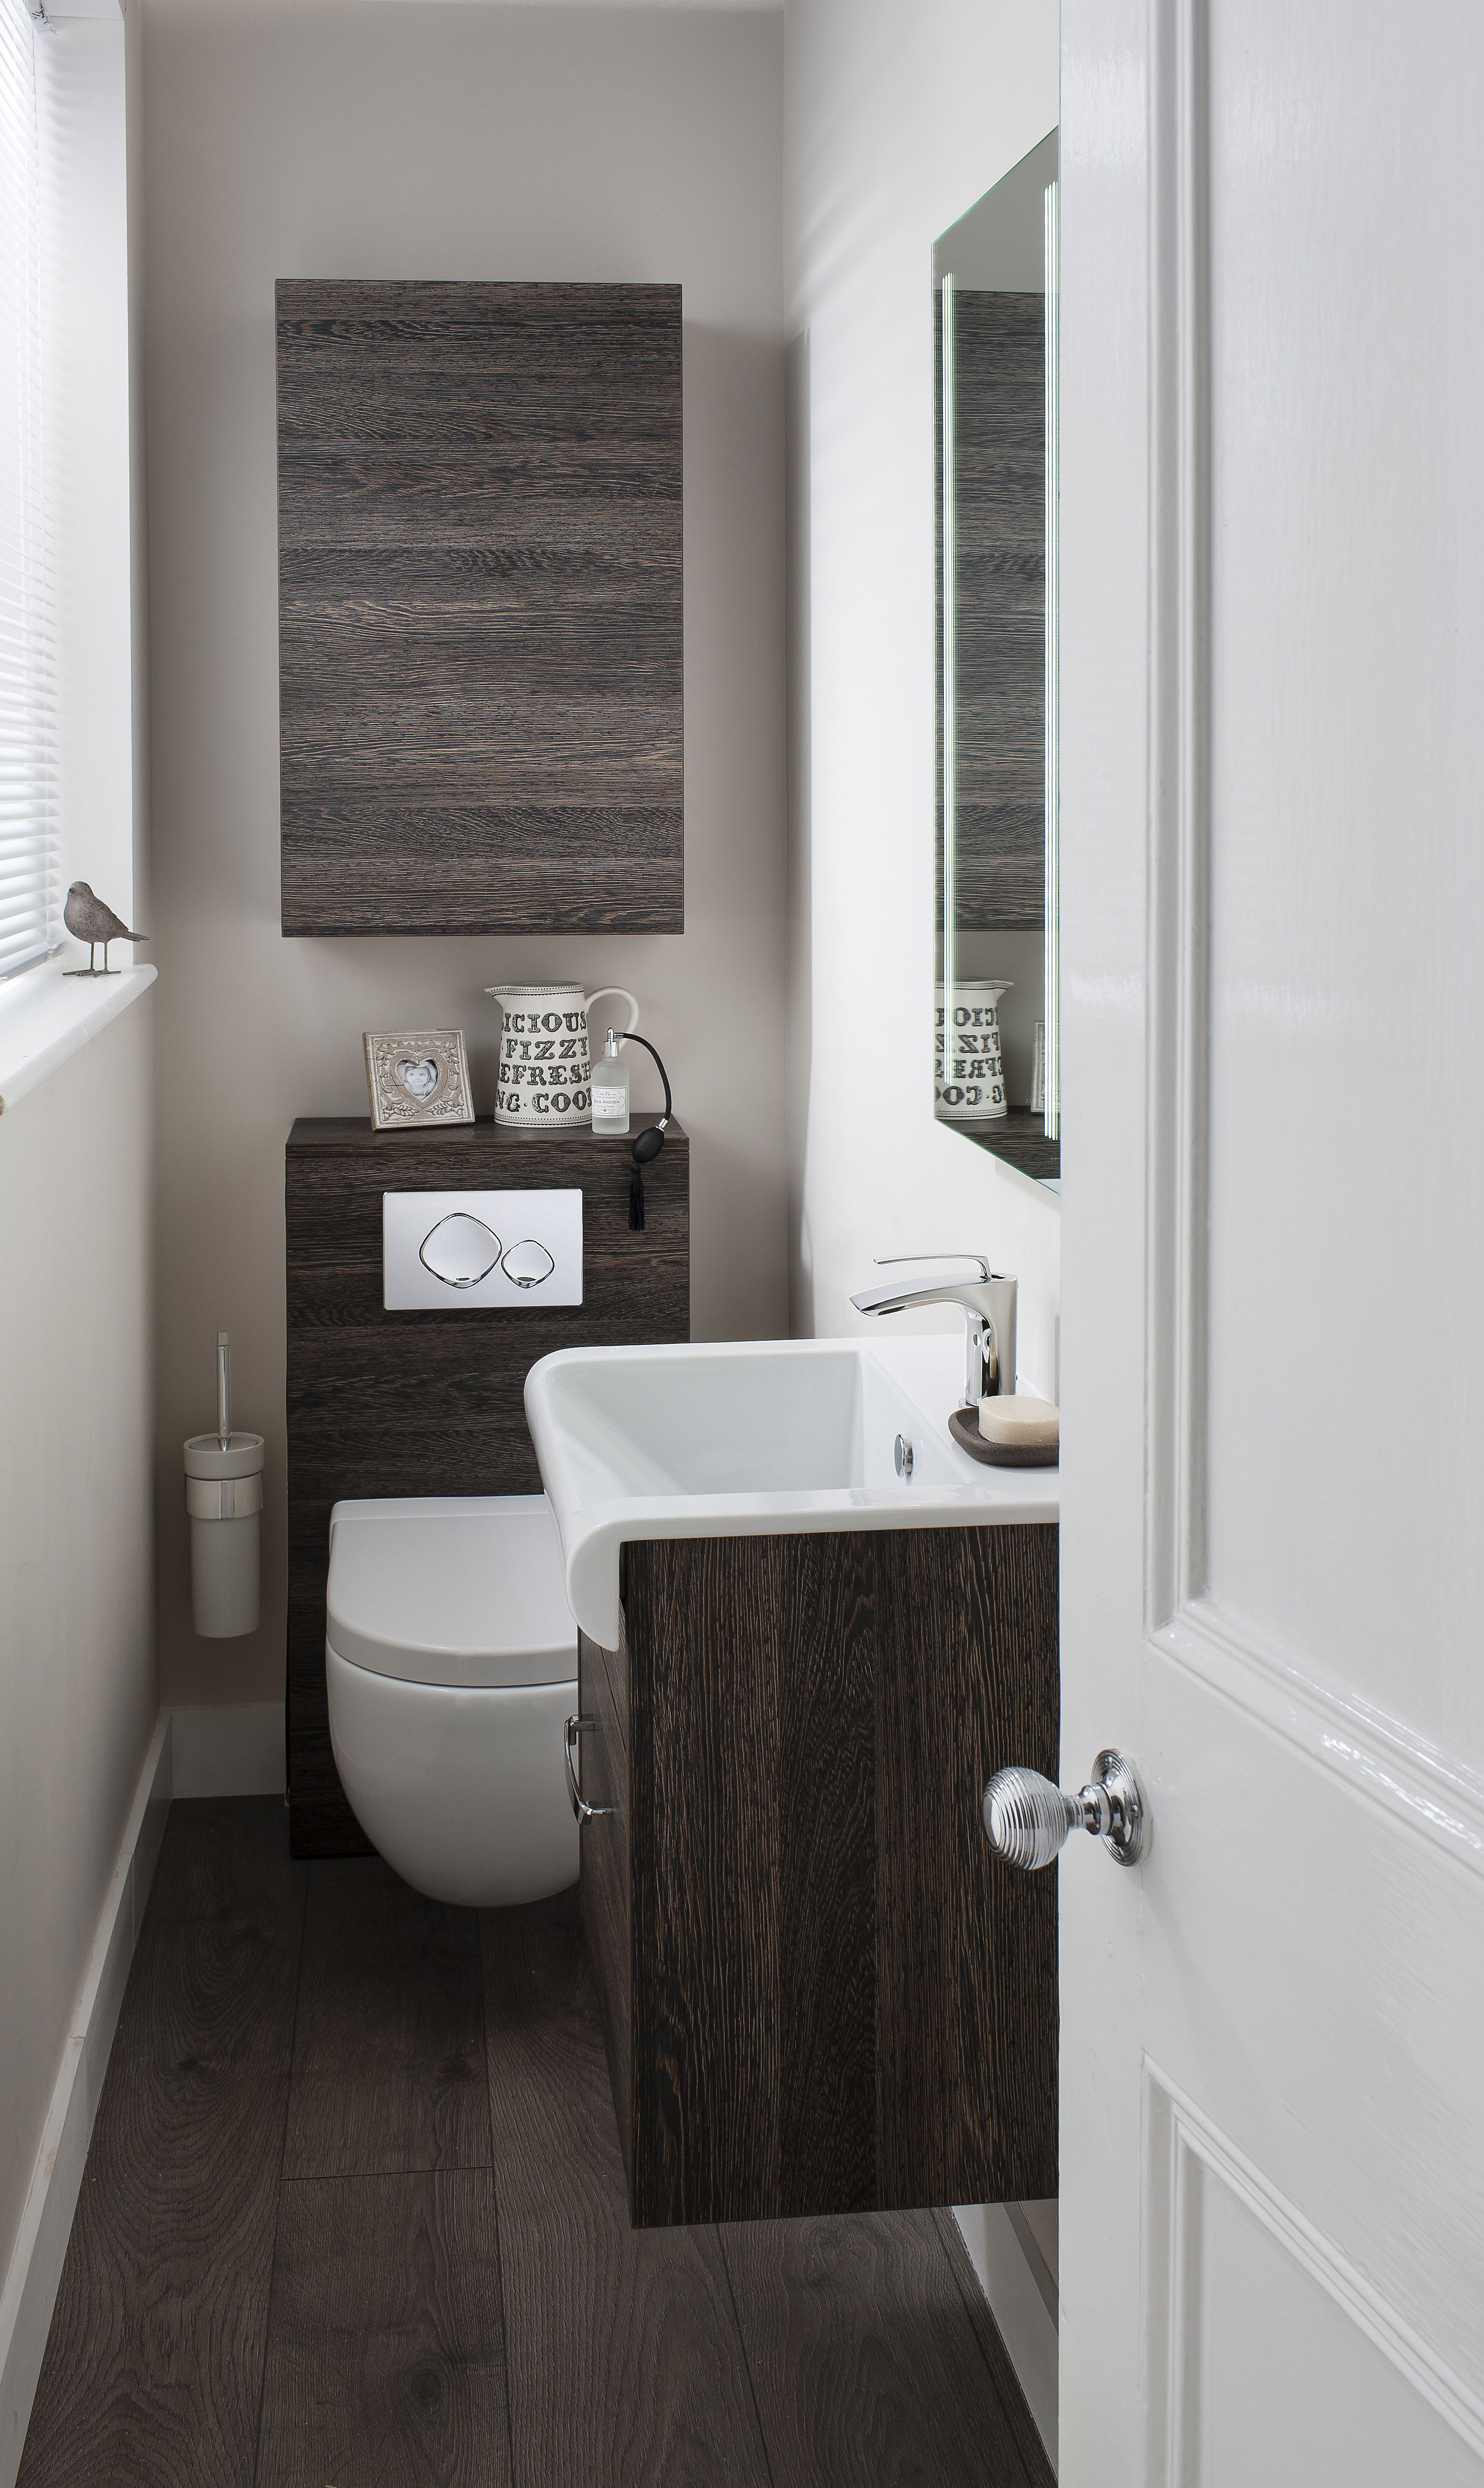 To acquire Bathroom stylish accessories uk picture trends